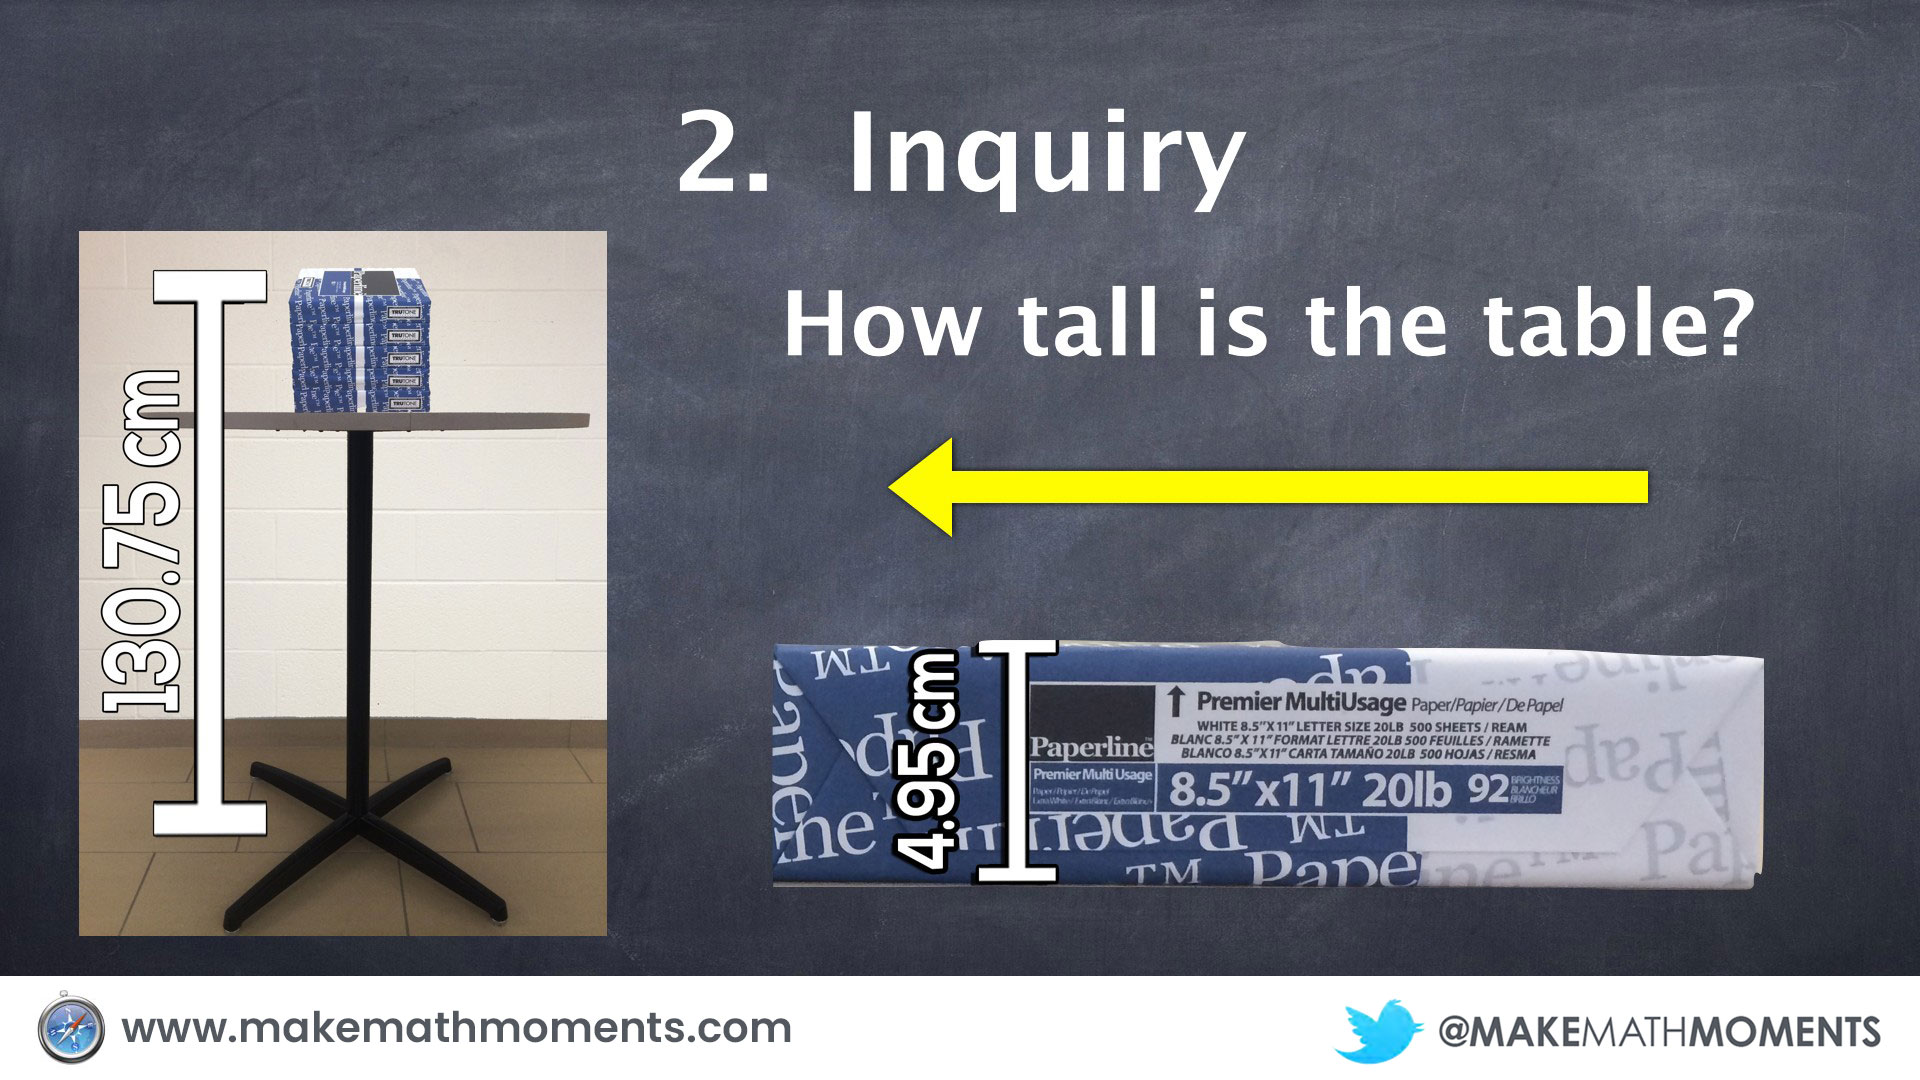 4-Part Math Lesson - Inquiry Part - Stacking Paper Sequel